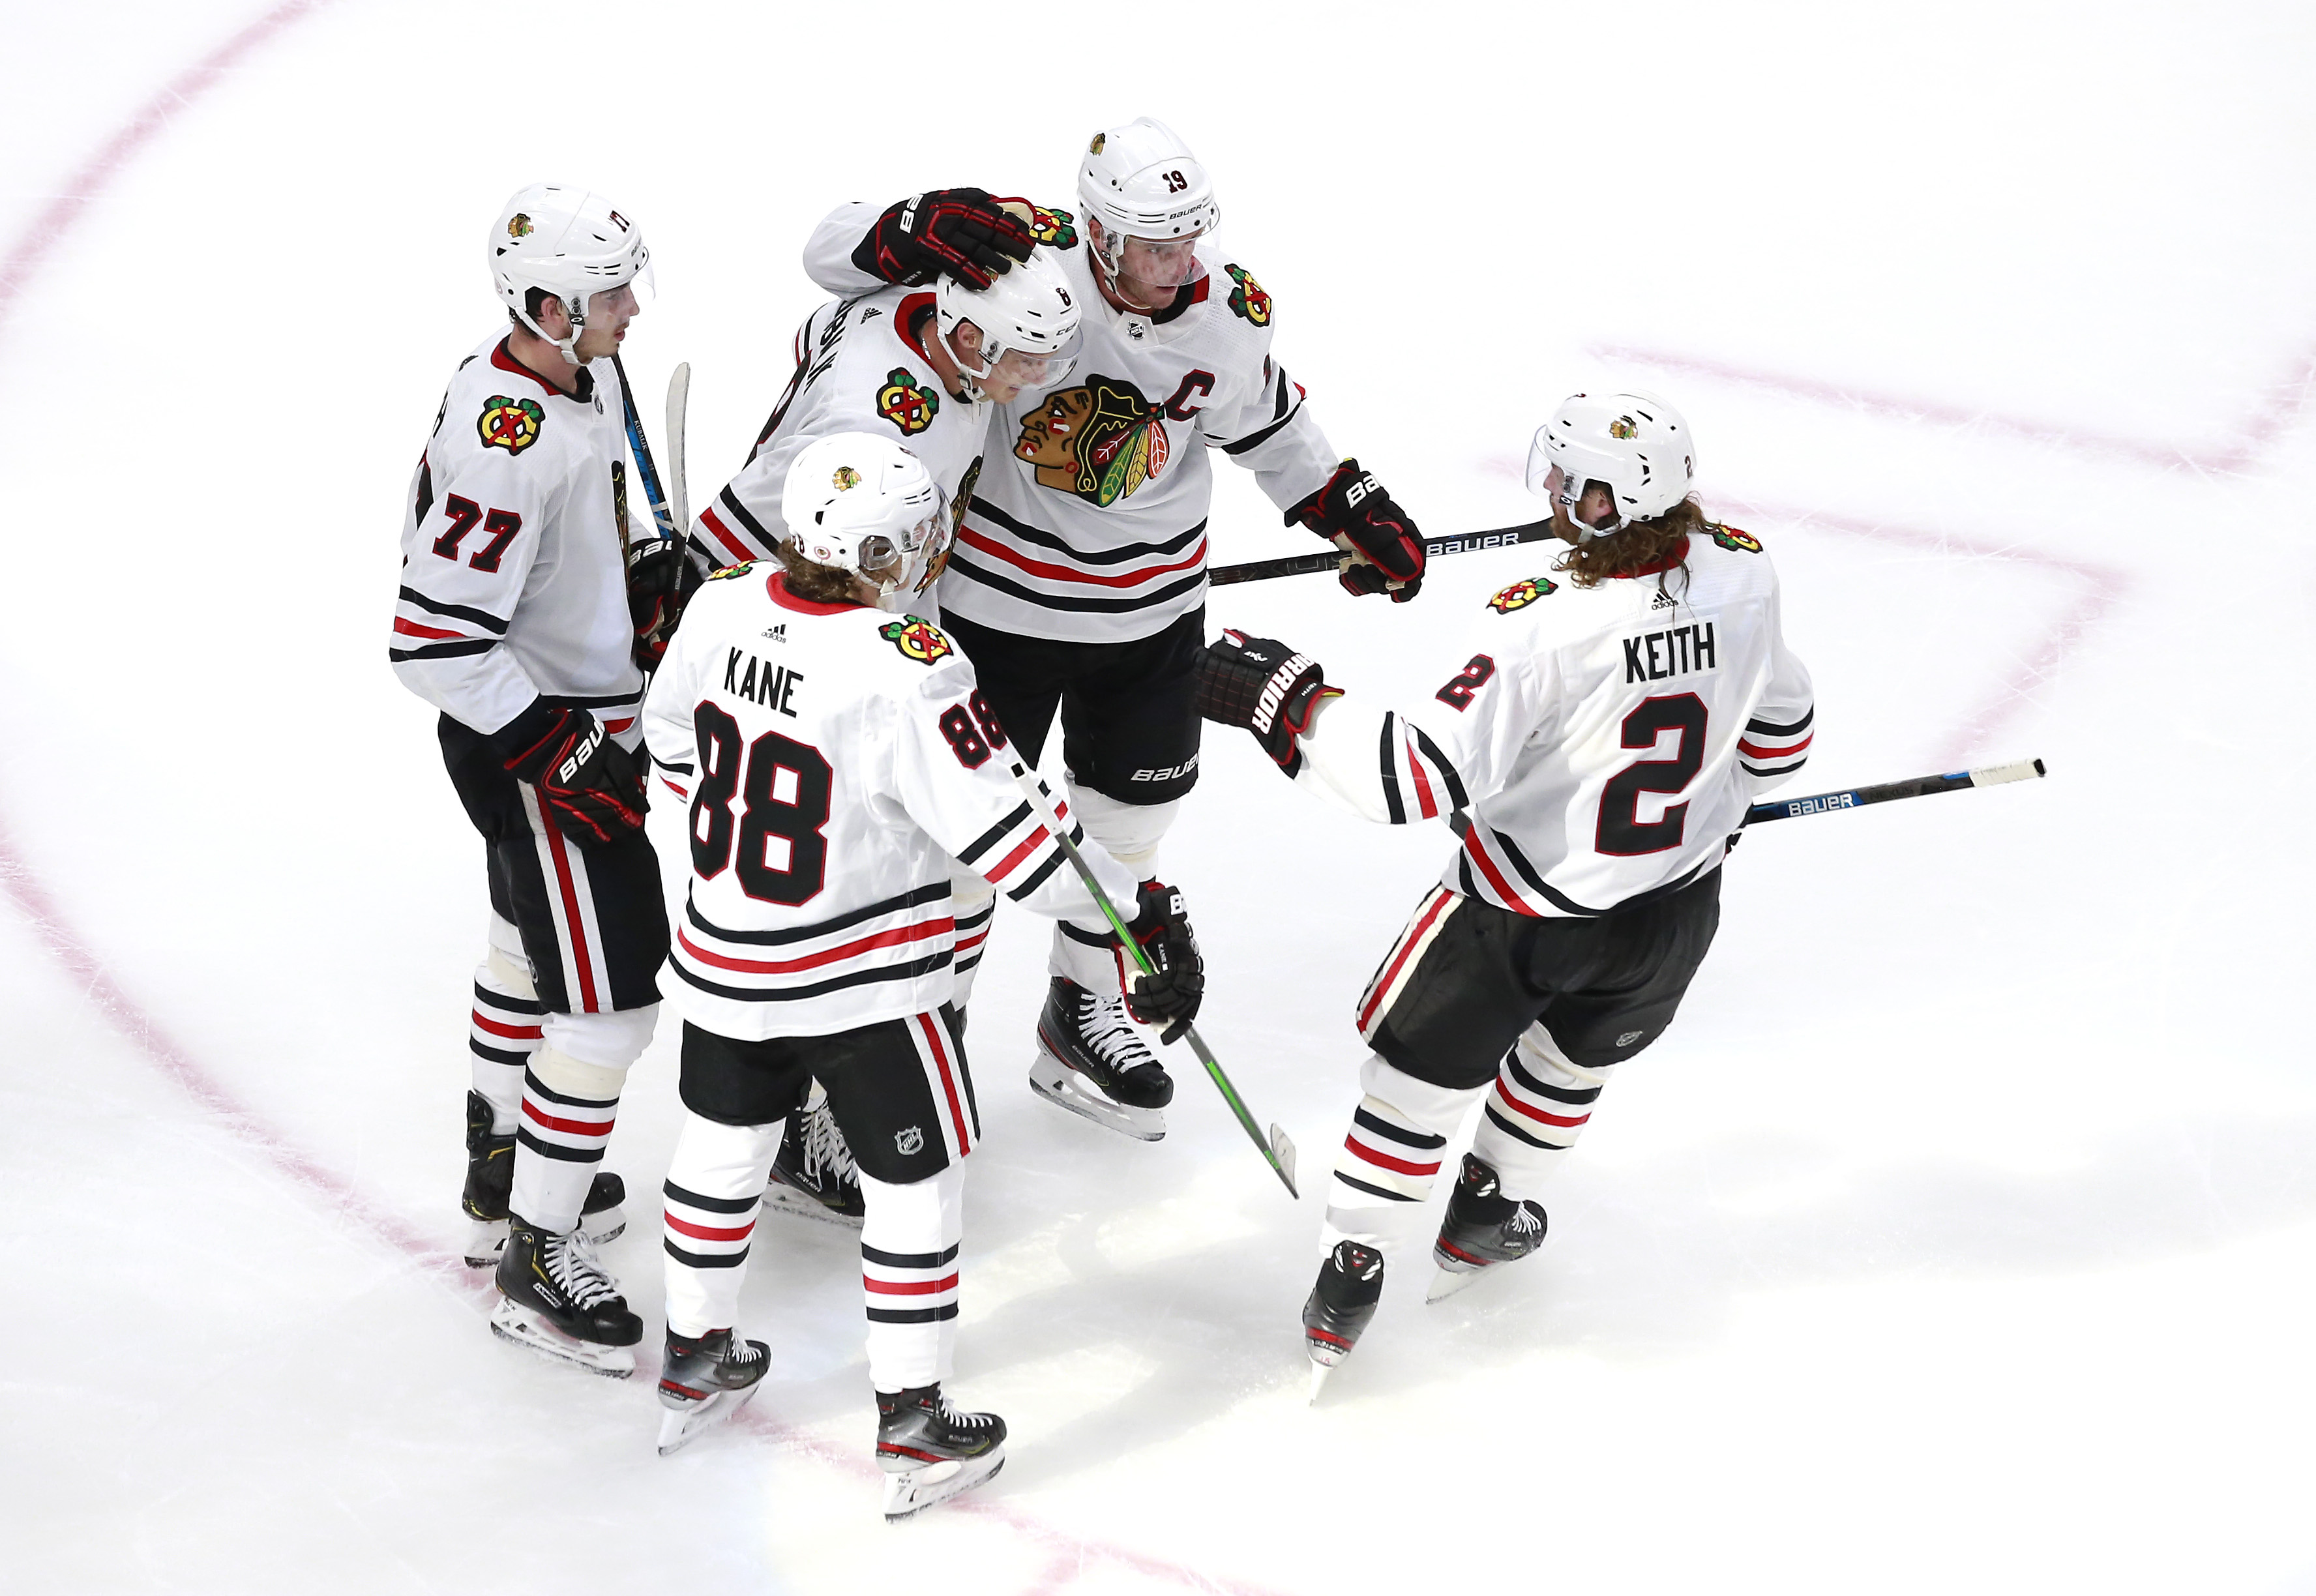 Despite the Blackhawks' youth movement, the preexisting core of Jonathan Toews, Patrick Kane and Duncan Keith will remain part of the team.